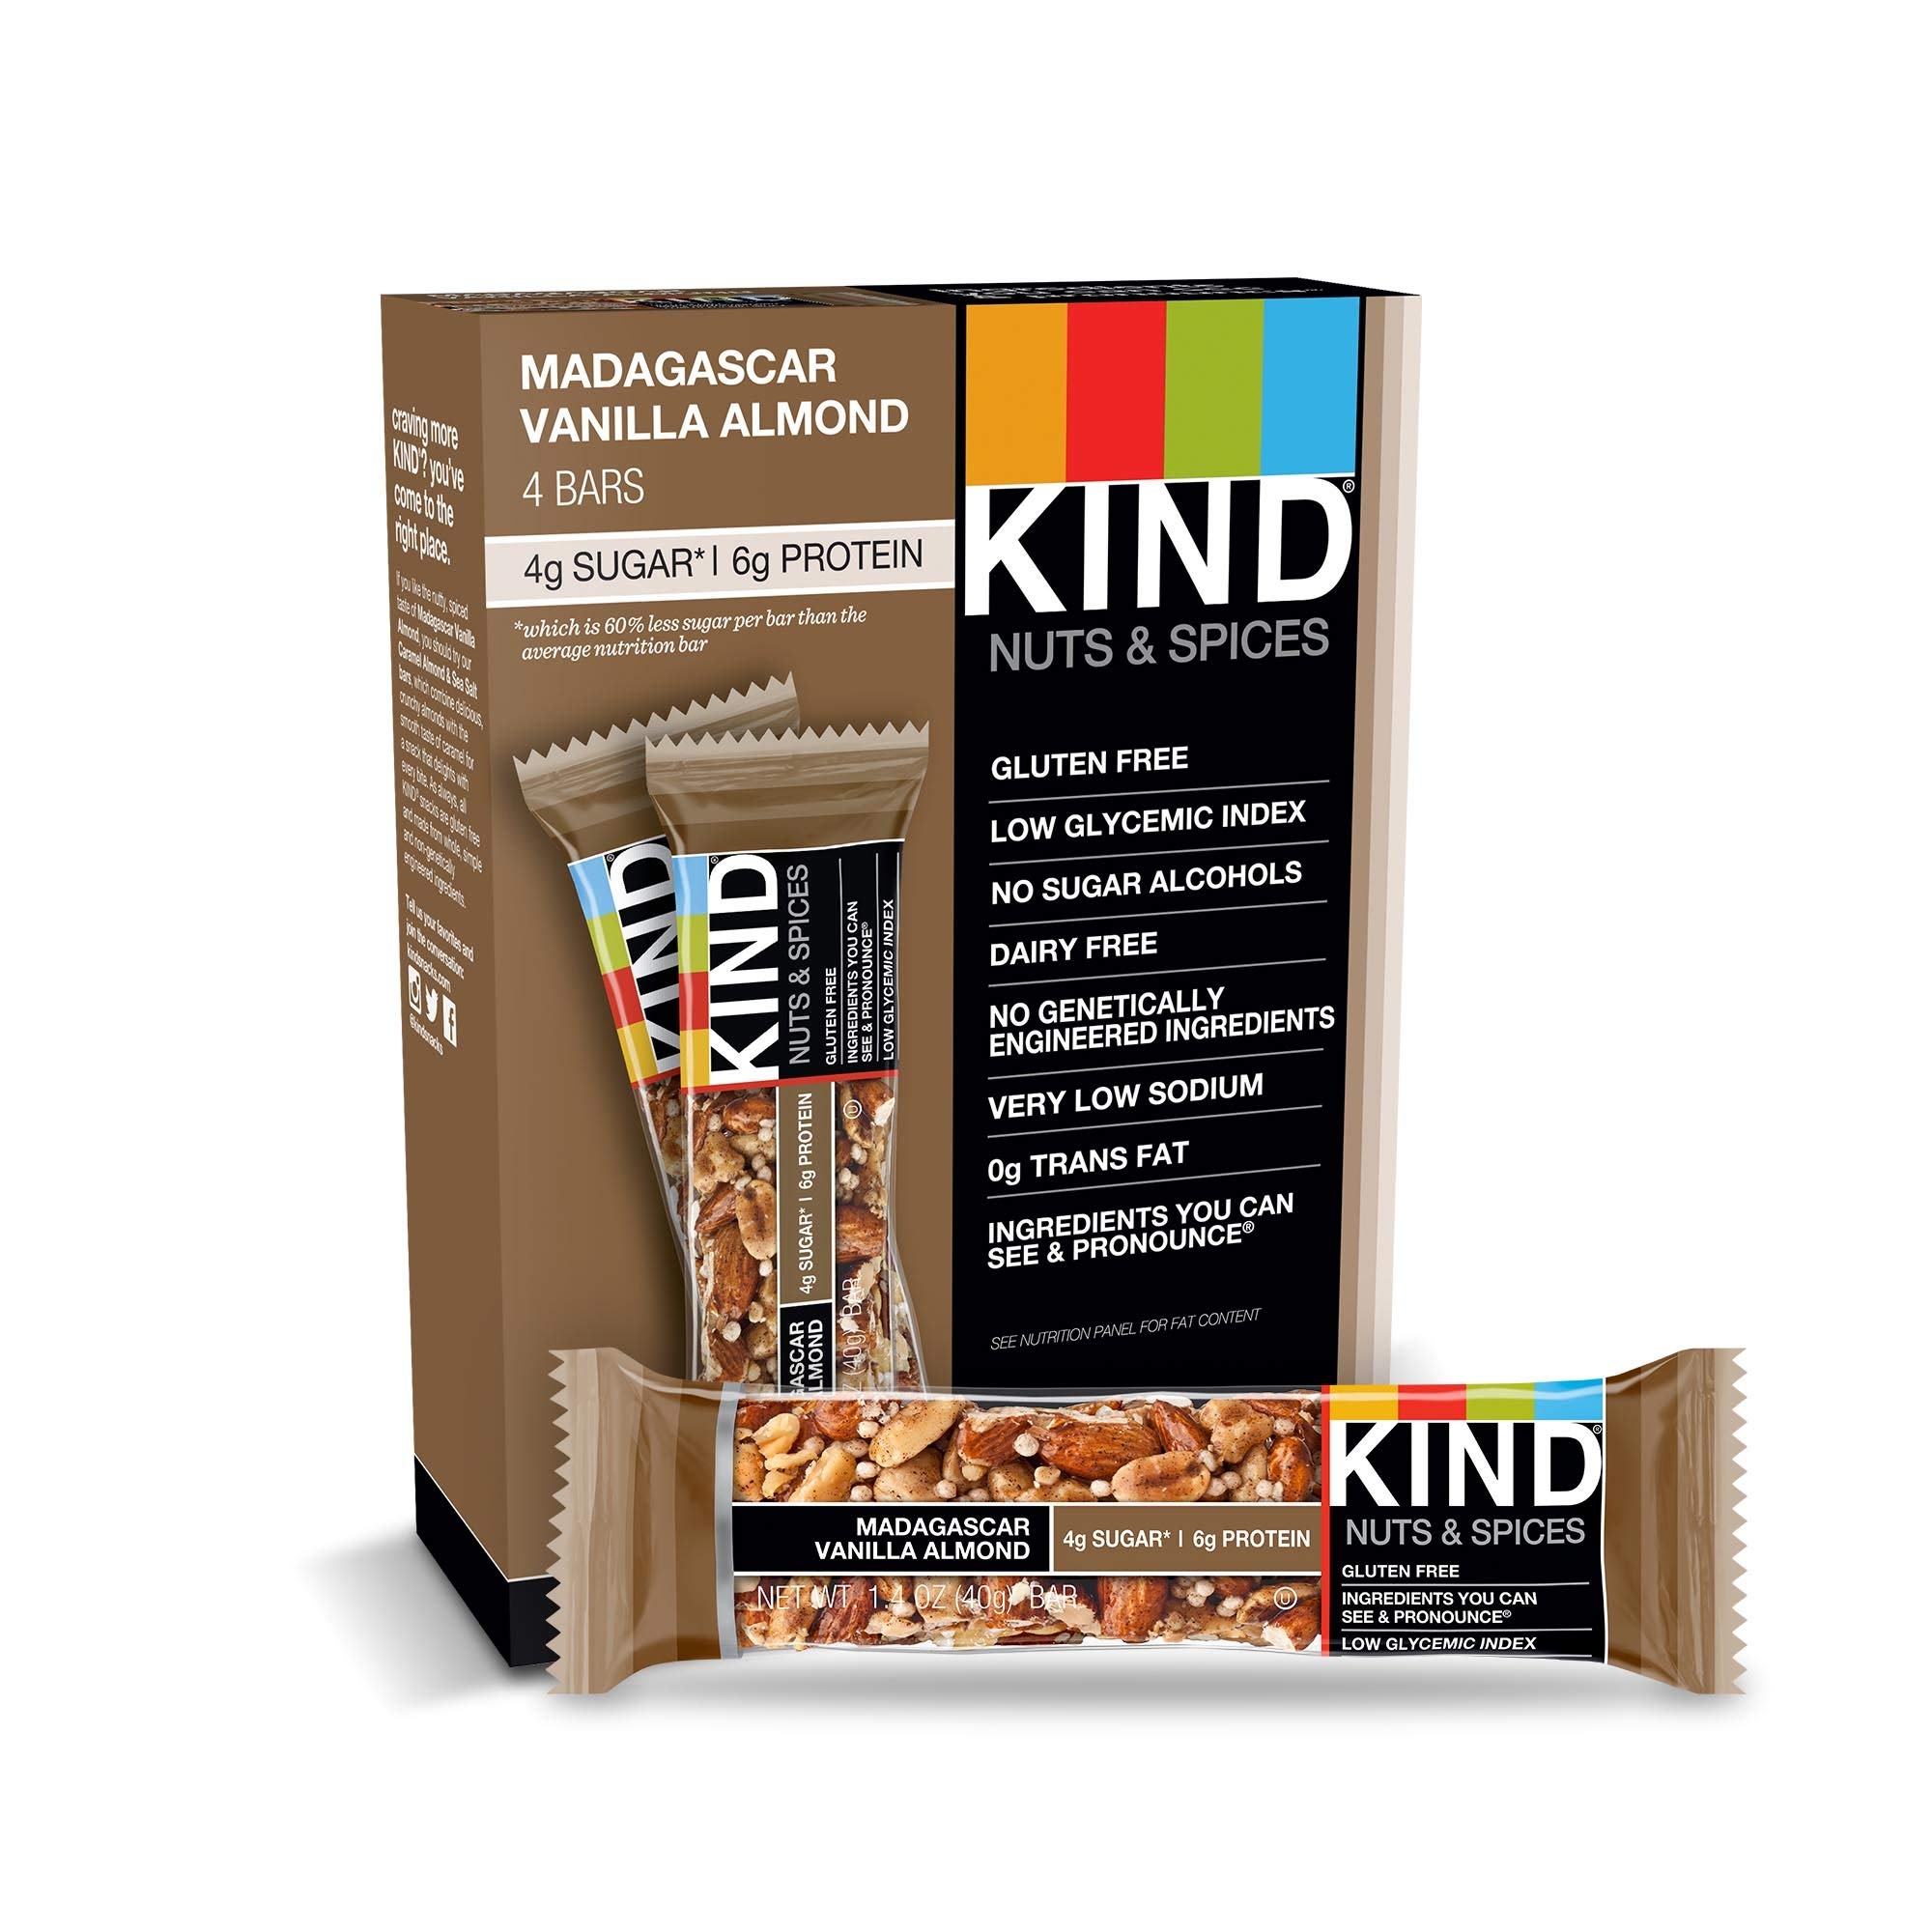 KIND Bars, Madagascar Vanilla Almond, Gluten Free, Low Sugar, 1.4oz, 48 Count by KIND